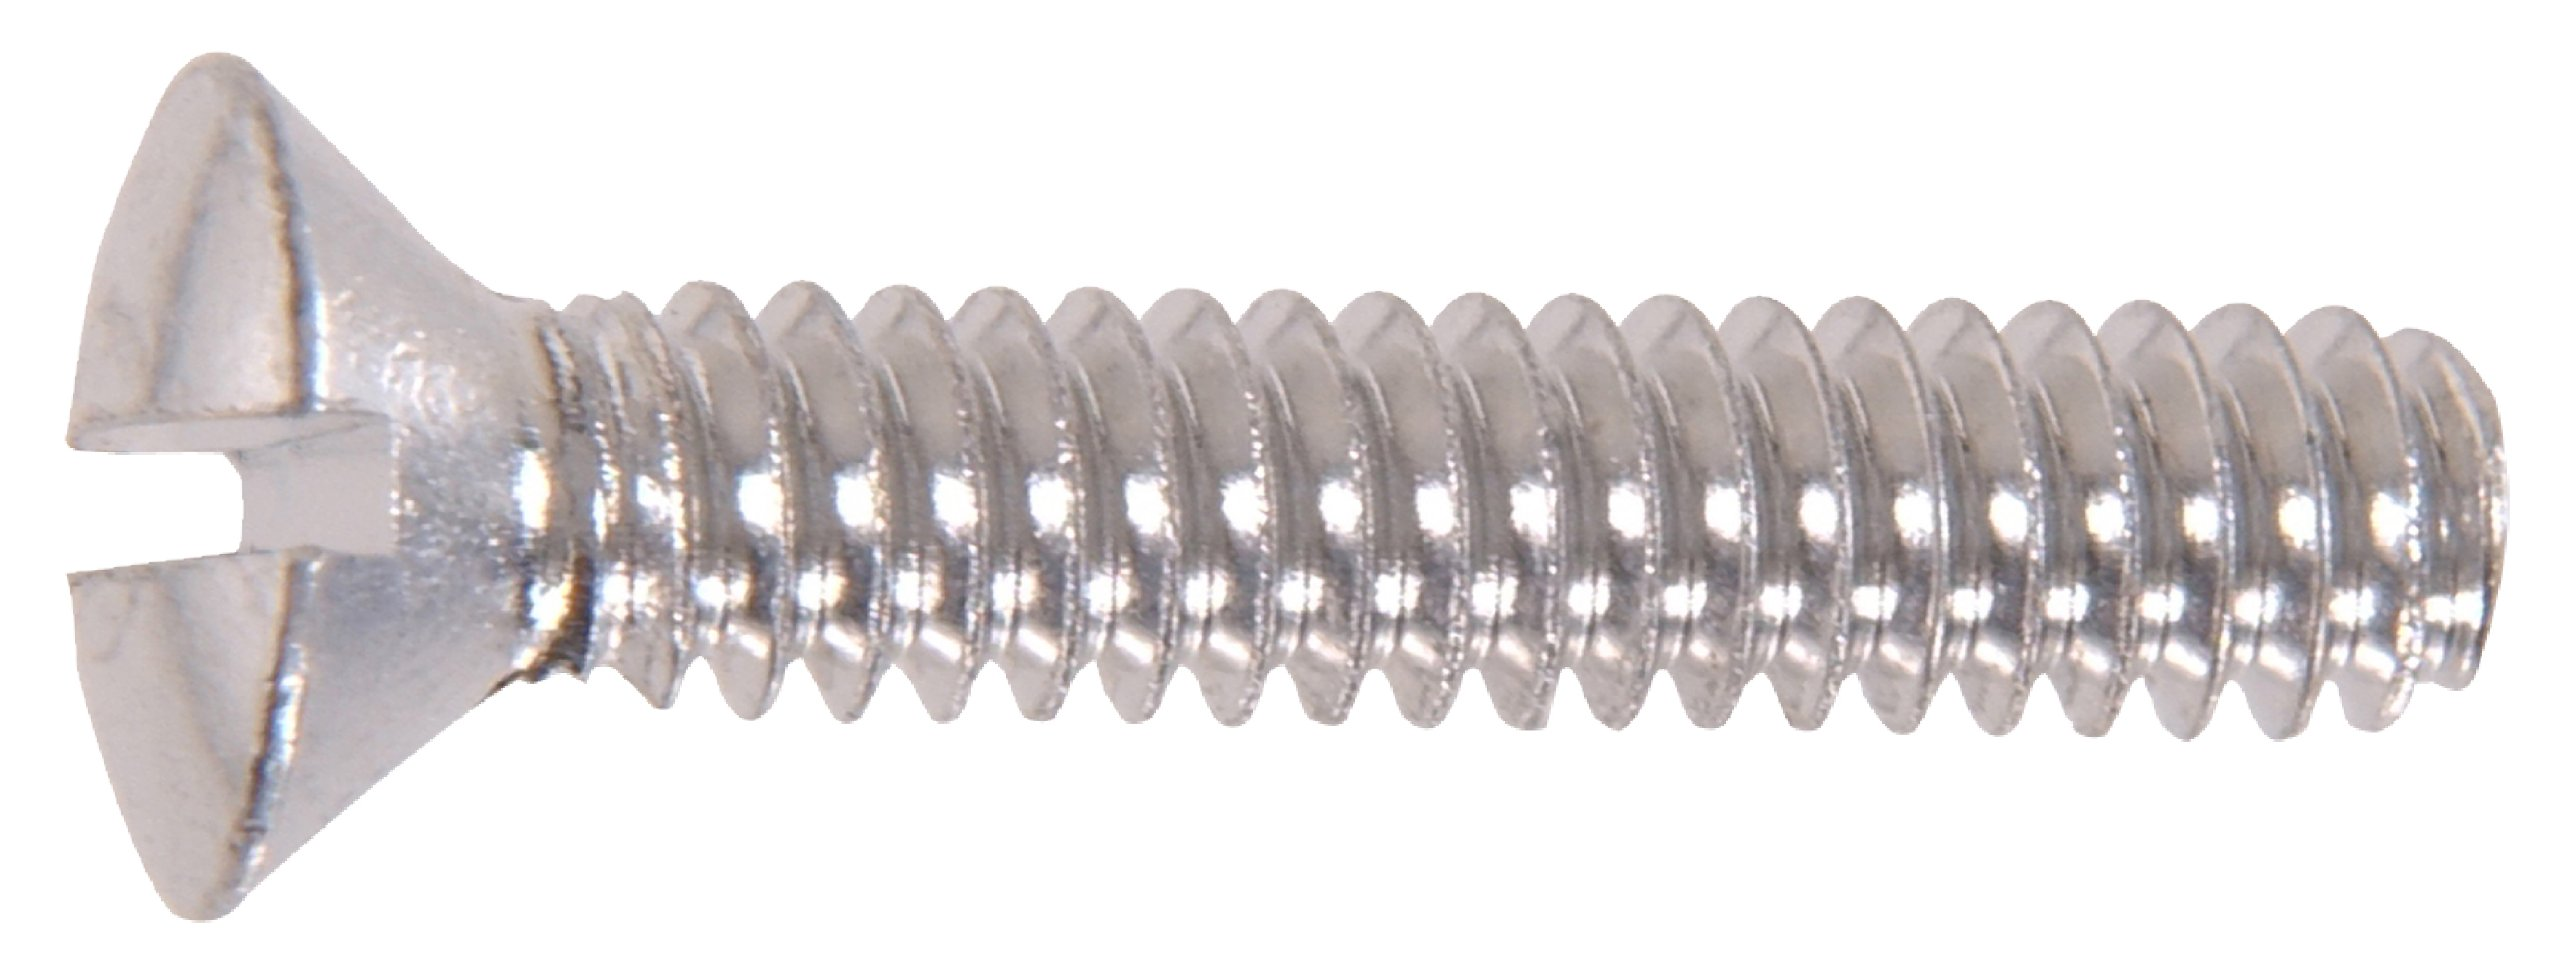 The Hillman Group The Hillman Group 1134 Aluminum Round Head Slotted Machine Screw 6-32 x 1/2 In. 40-Pack